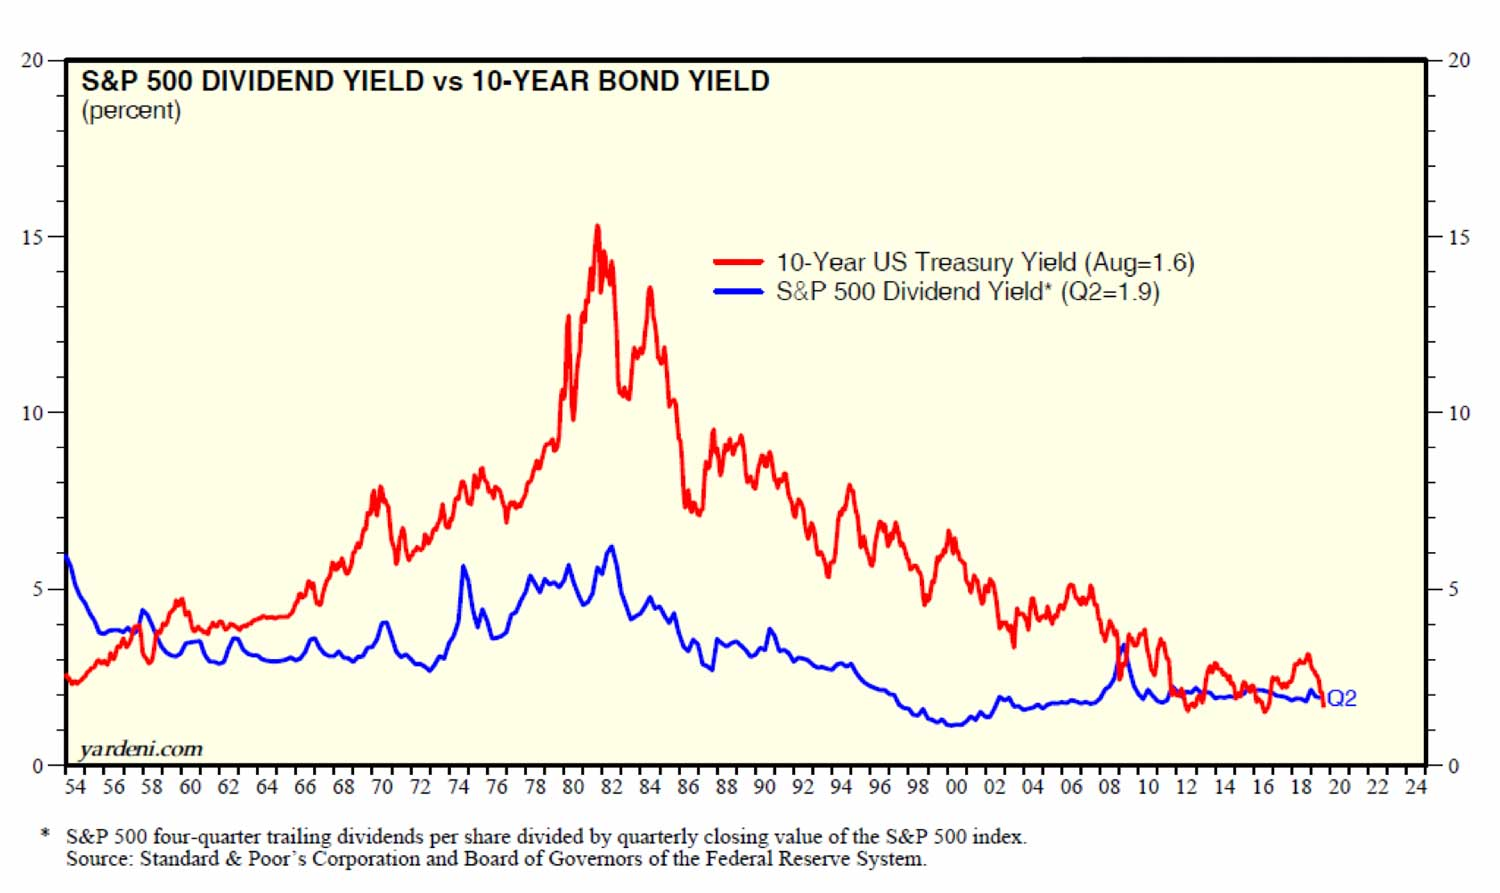 Dividend vs. Treasury Bond Yield